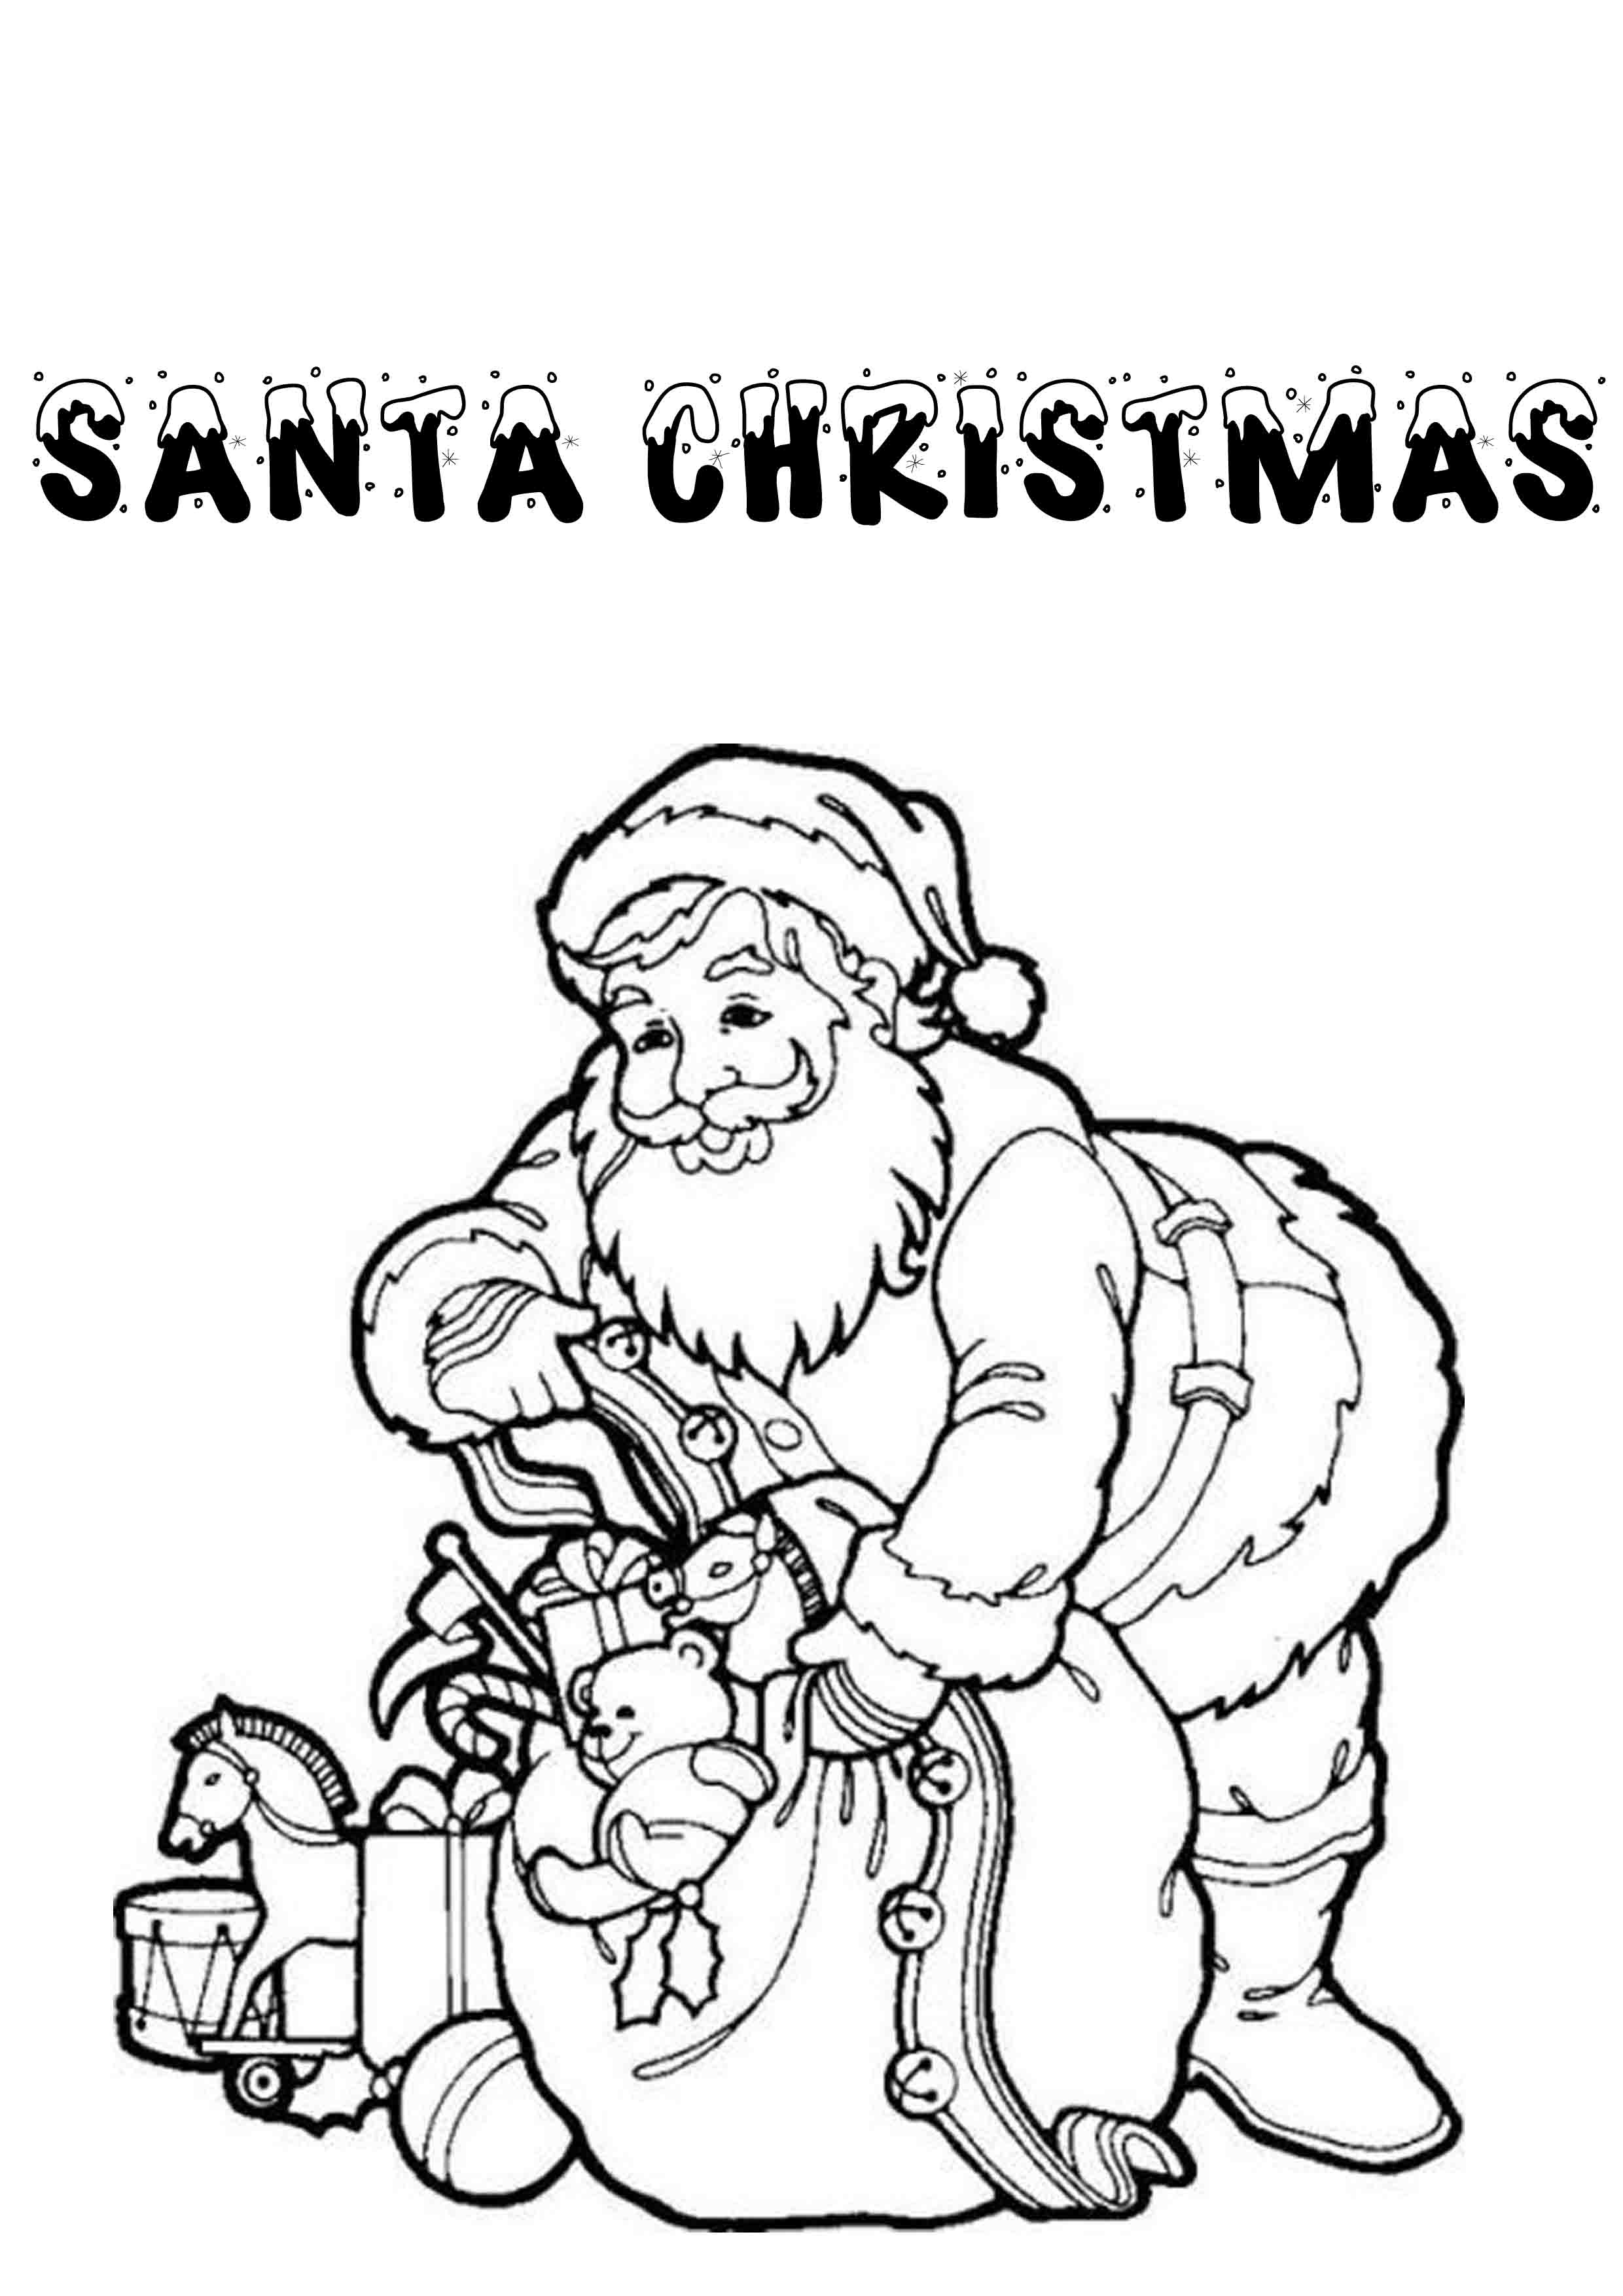 Victorian Christmas Coloring Book With Print Download Printable Pages For Kids